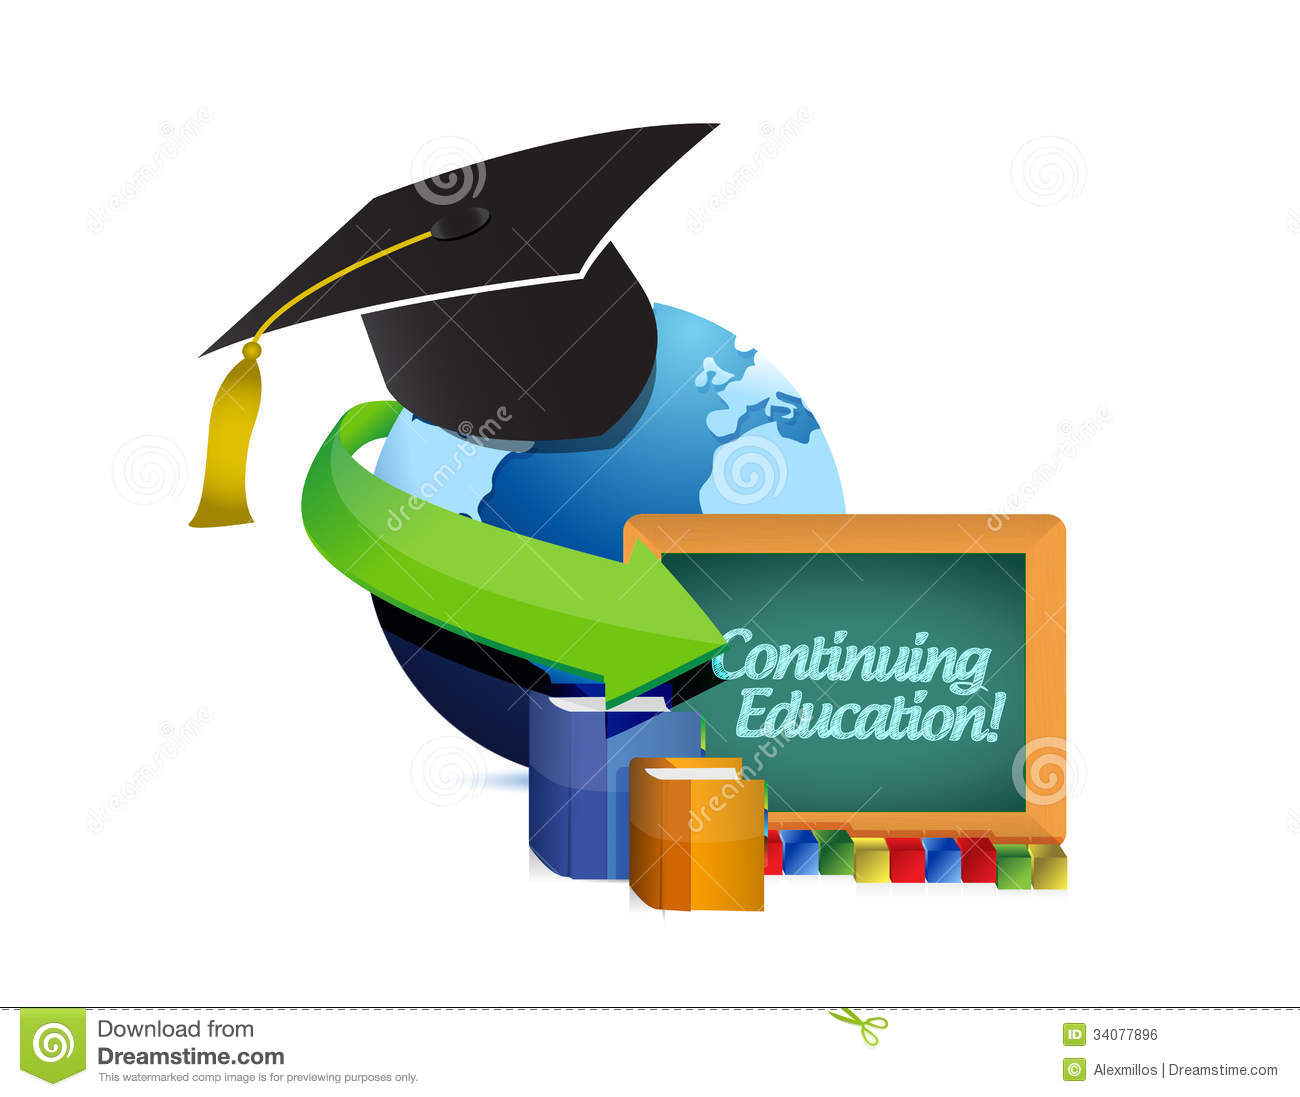 Continuing Education Clip Art